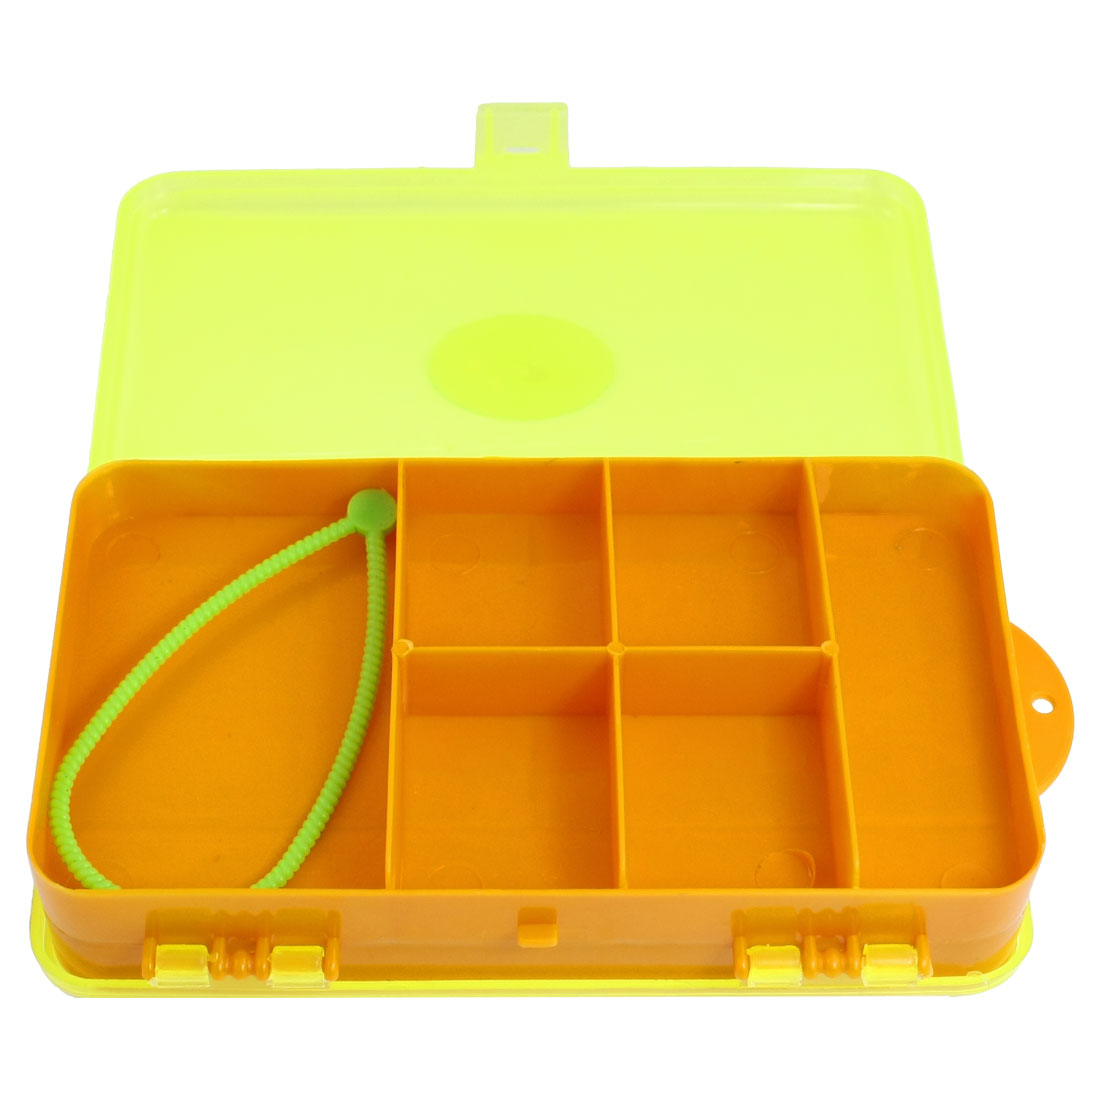 Clear Yellow Orange Plastic 11 Compartment Fishing Hook Holder Case